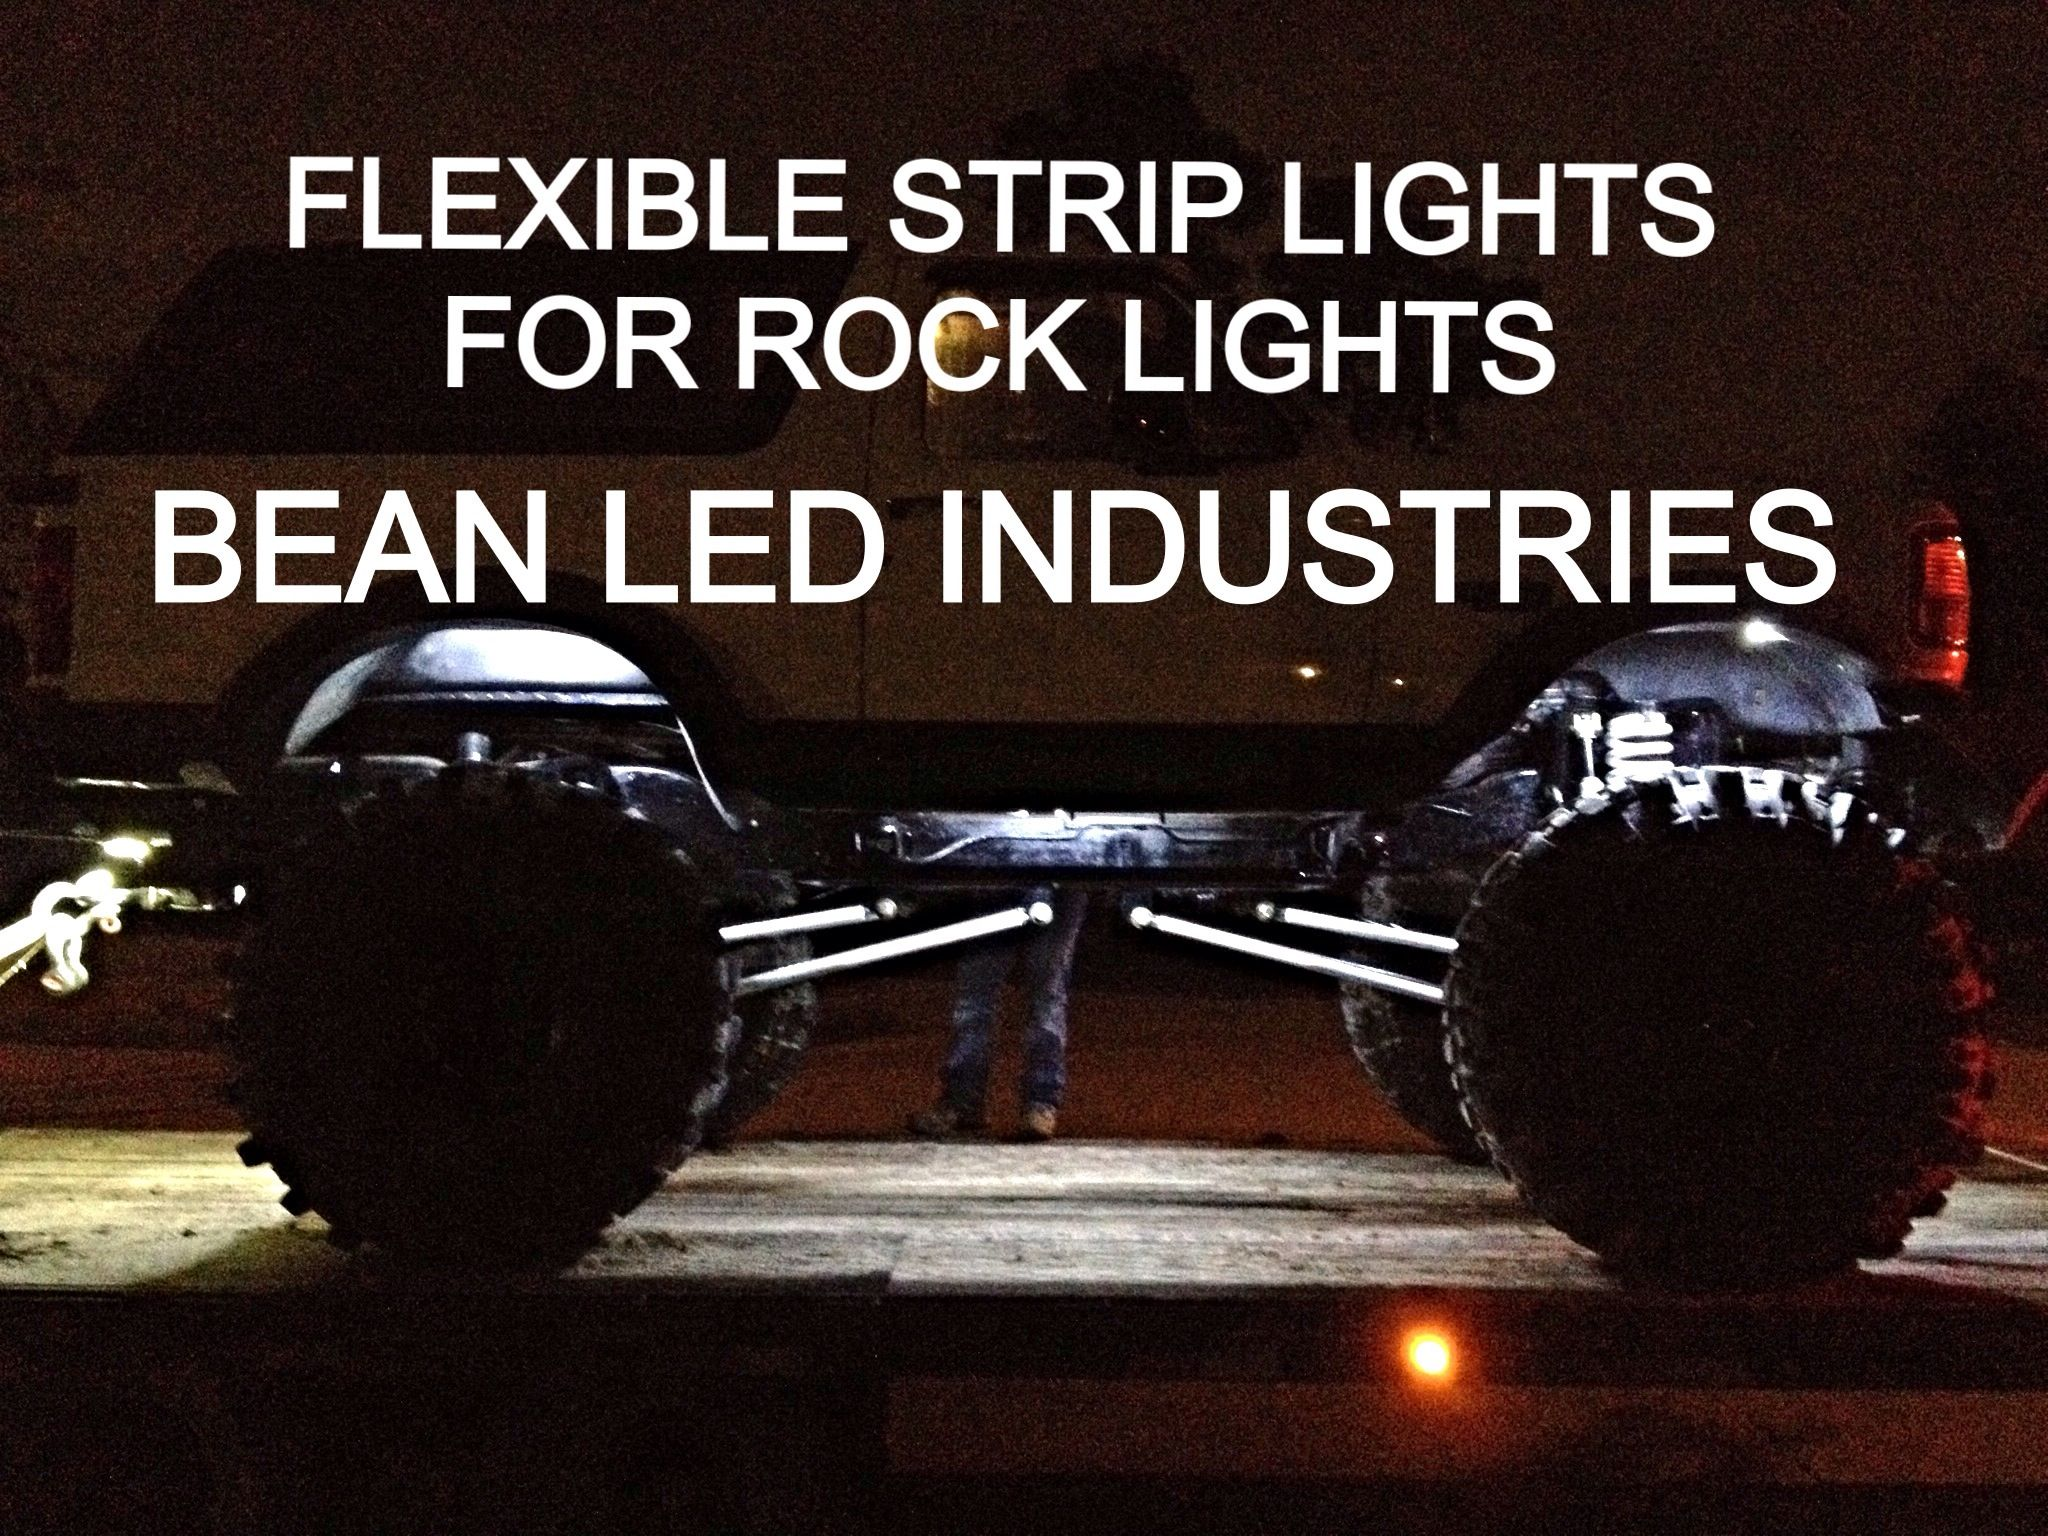 Lifted Ford Bronco with rock lights